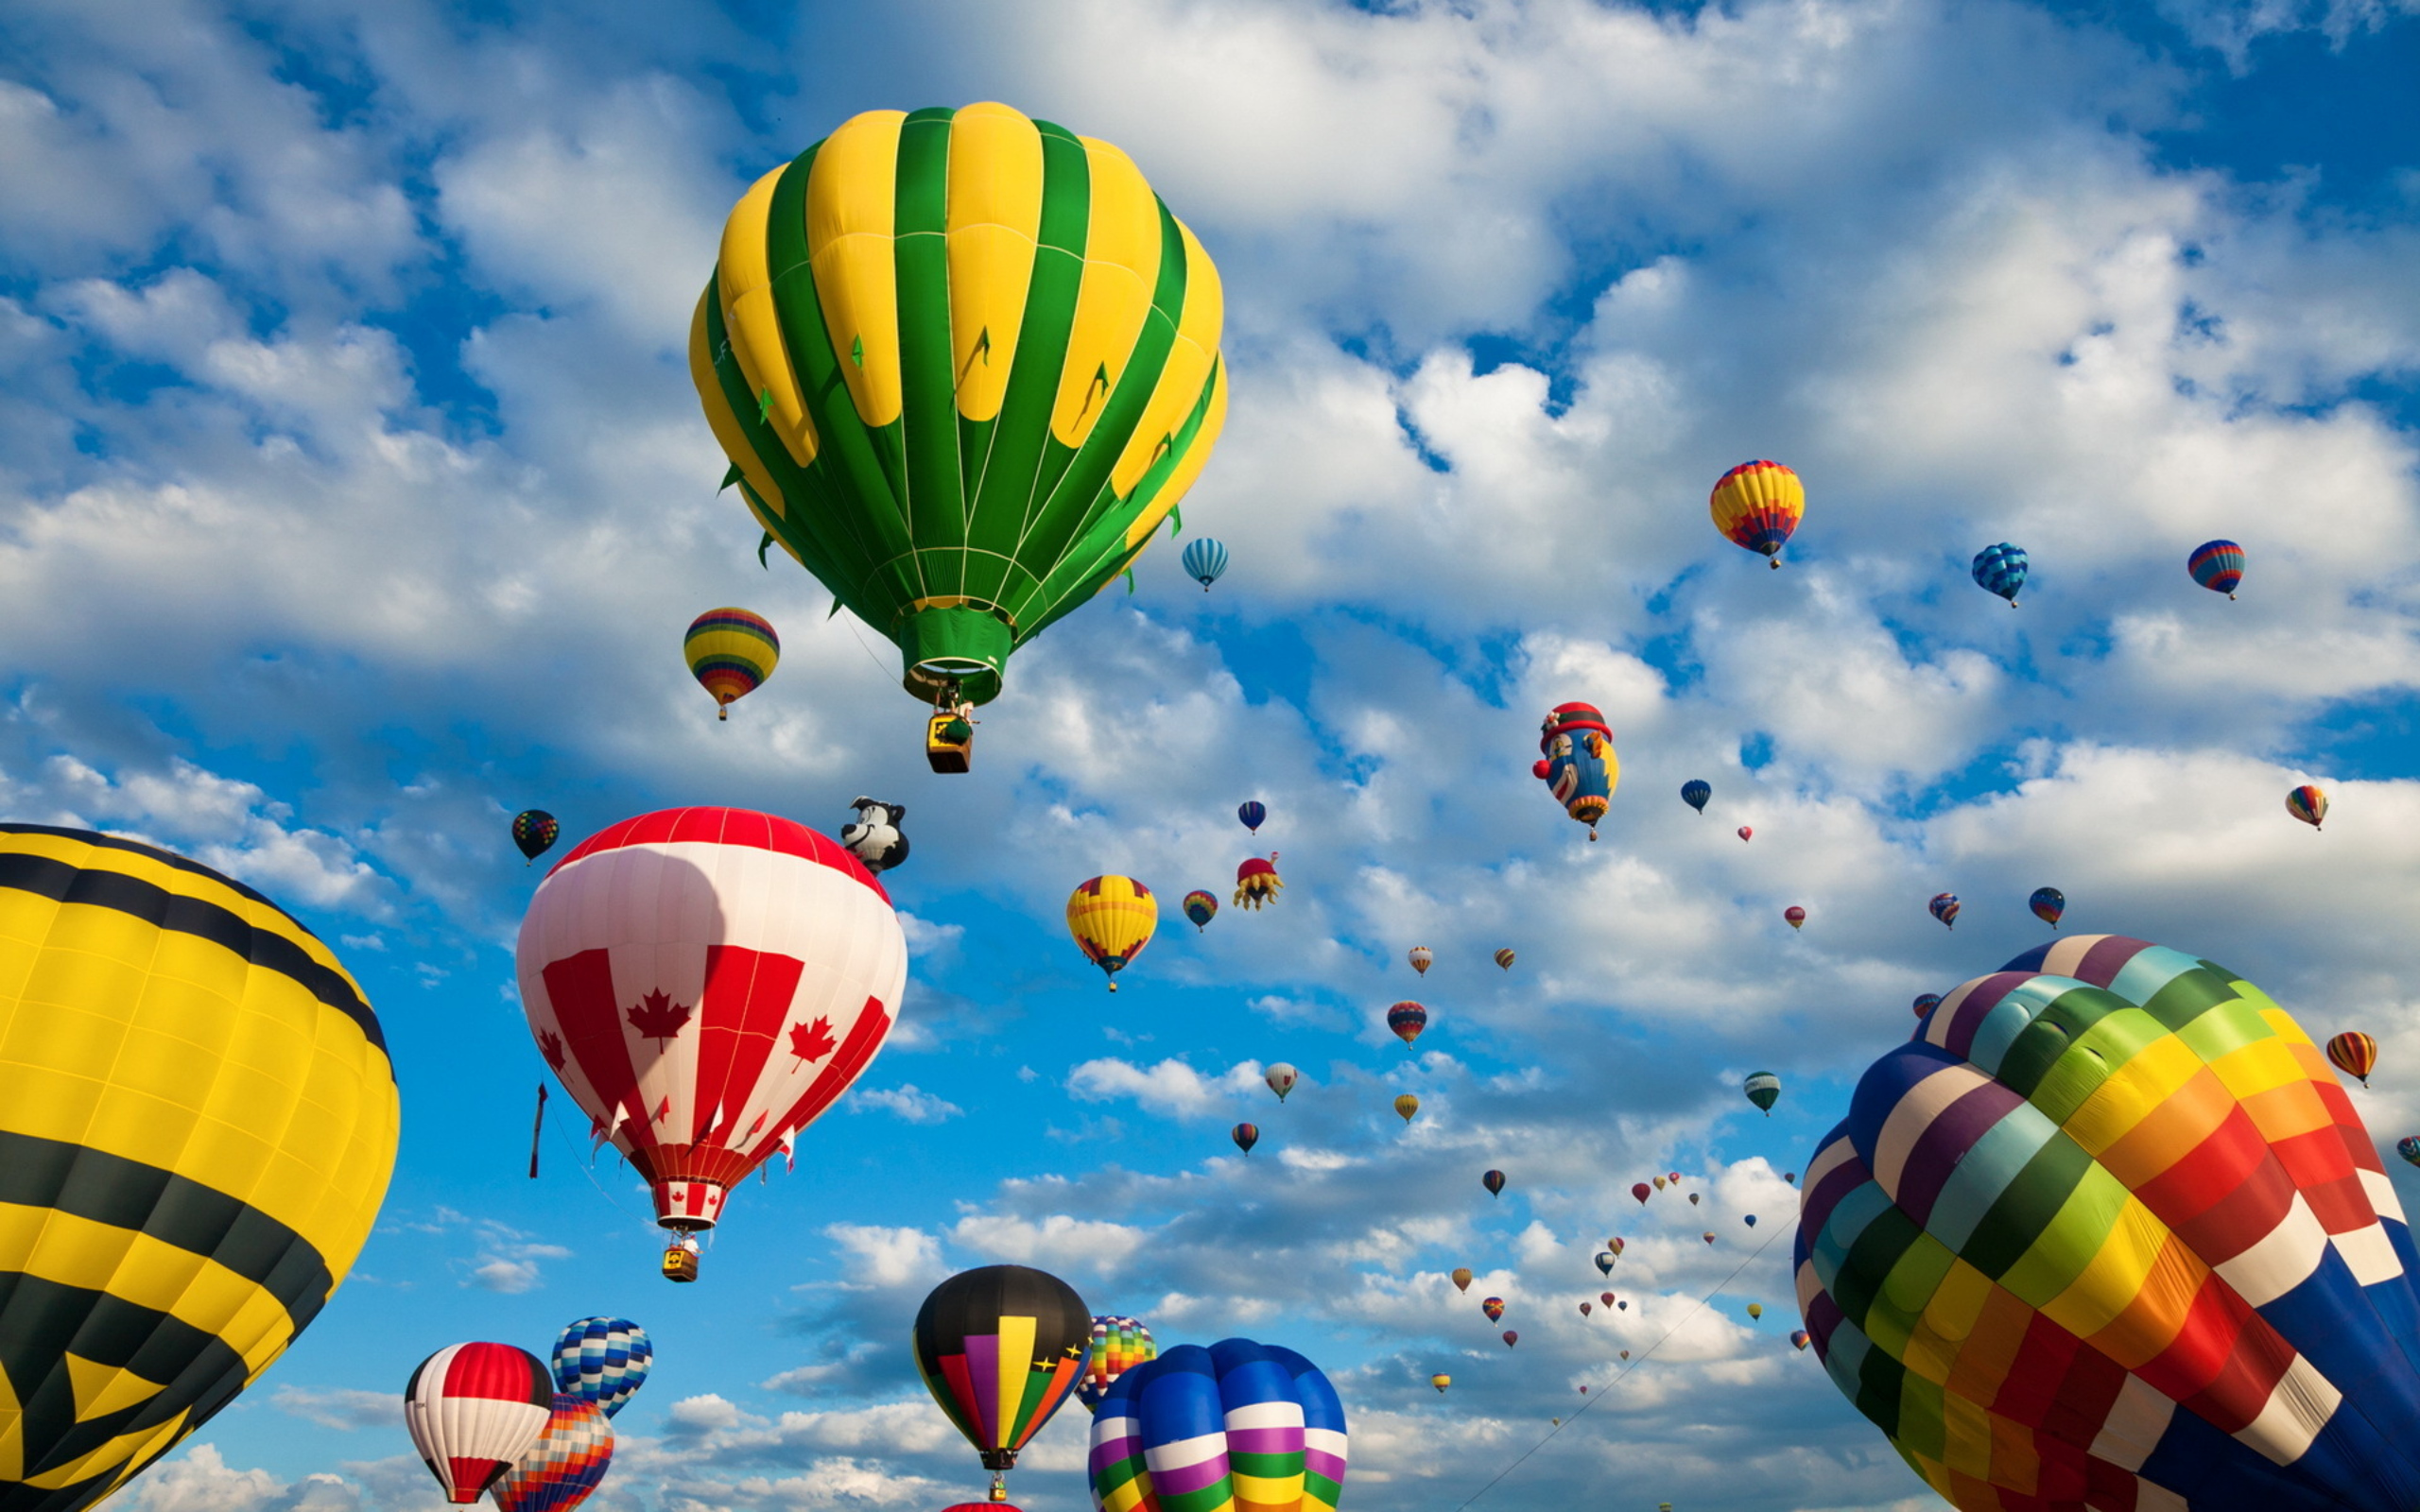 HD Wallpapers Beautiful Balloon - Up In The Sky